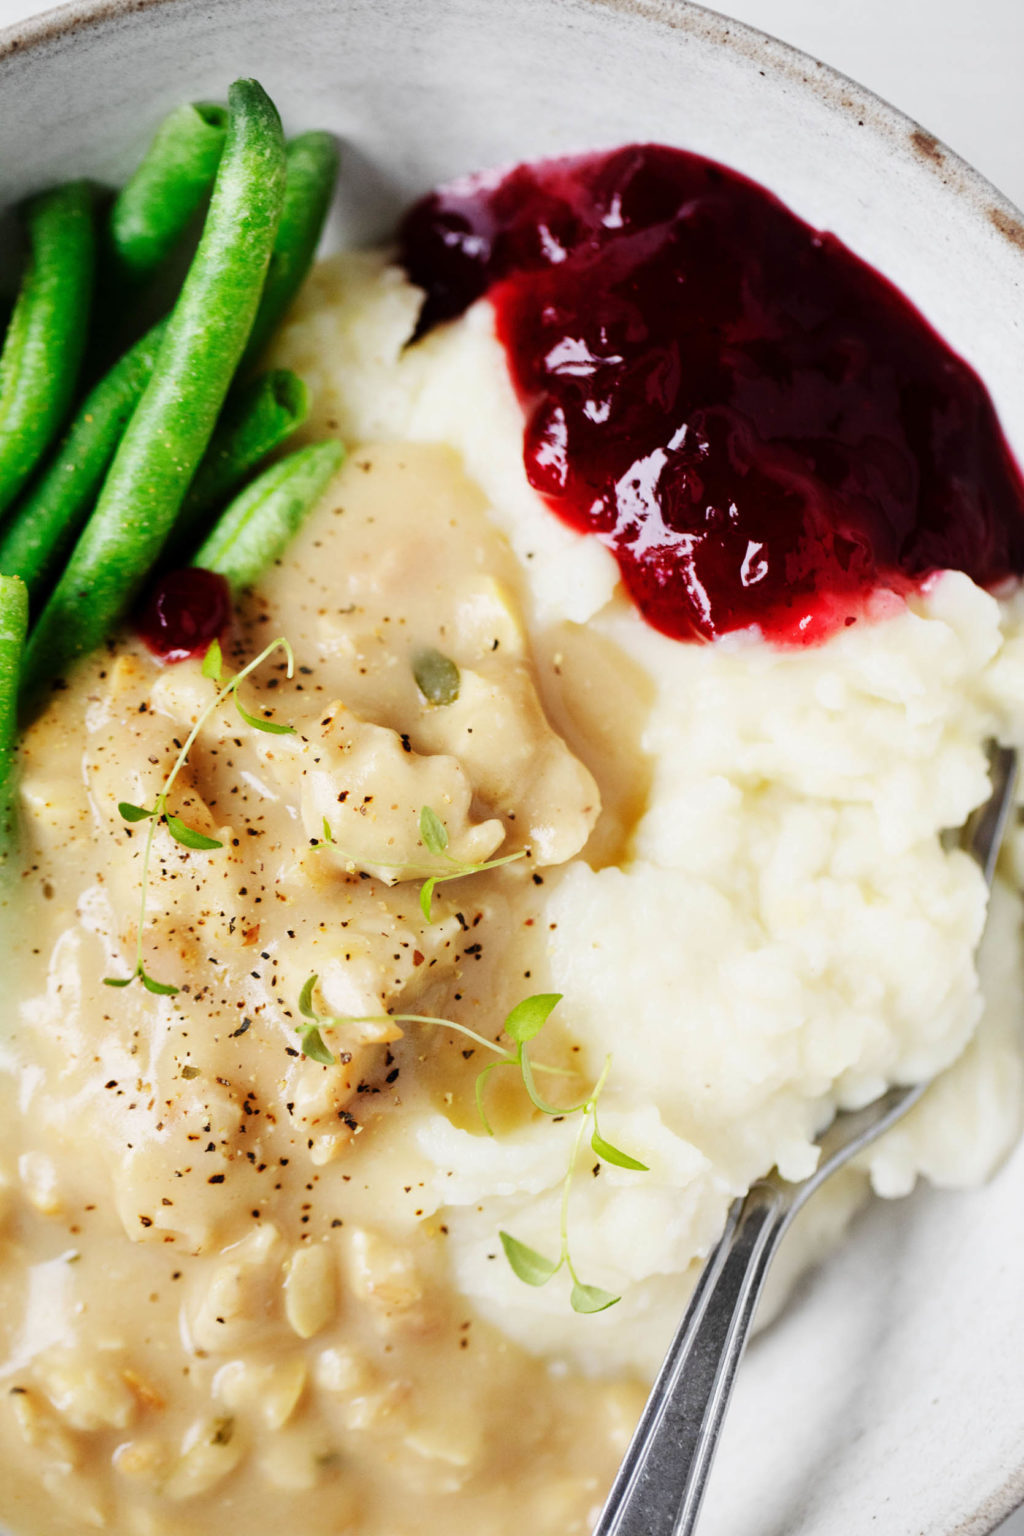 A cozy, hearty serving of traditional Thanksgiving ingredients, garnished with fresh thyme.